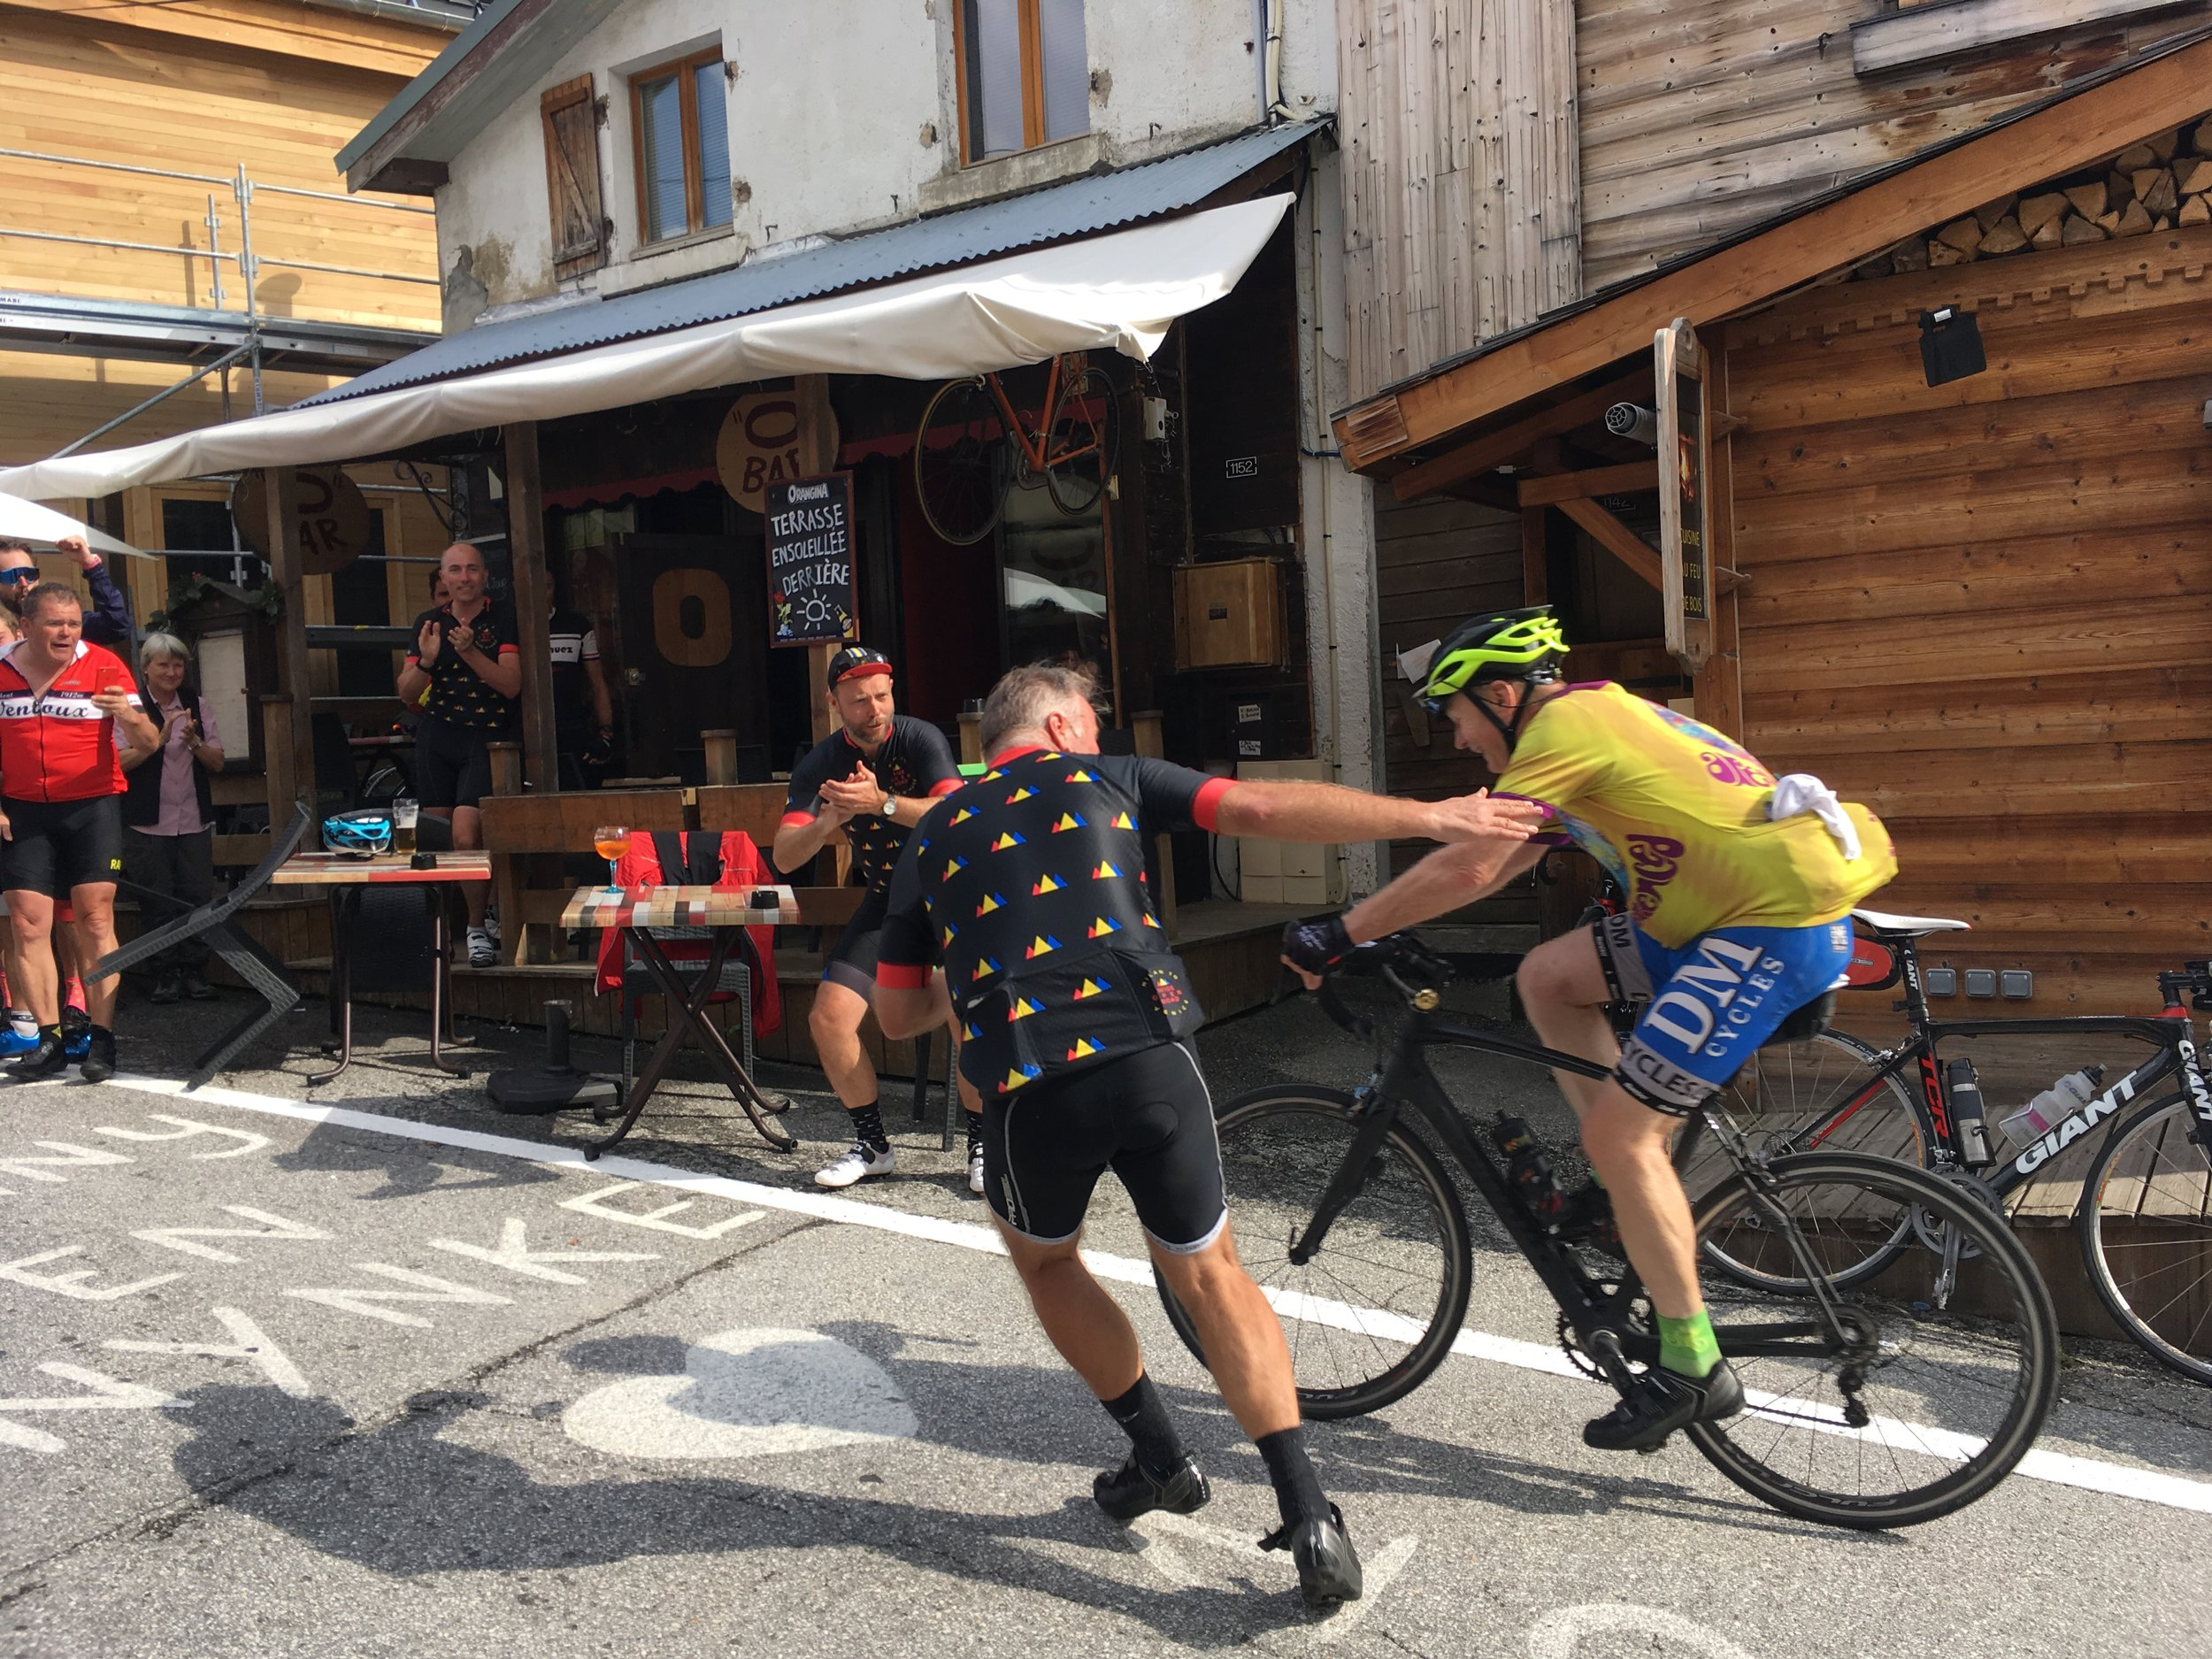 Cheering our riders in as they arrive on Alpe d'Huez